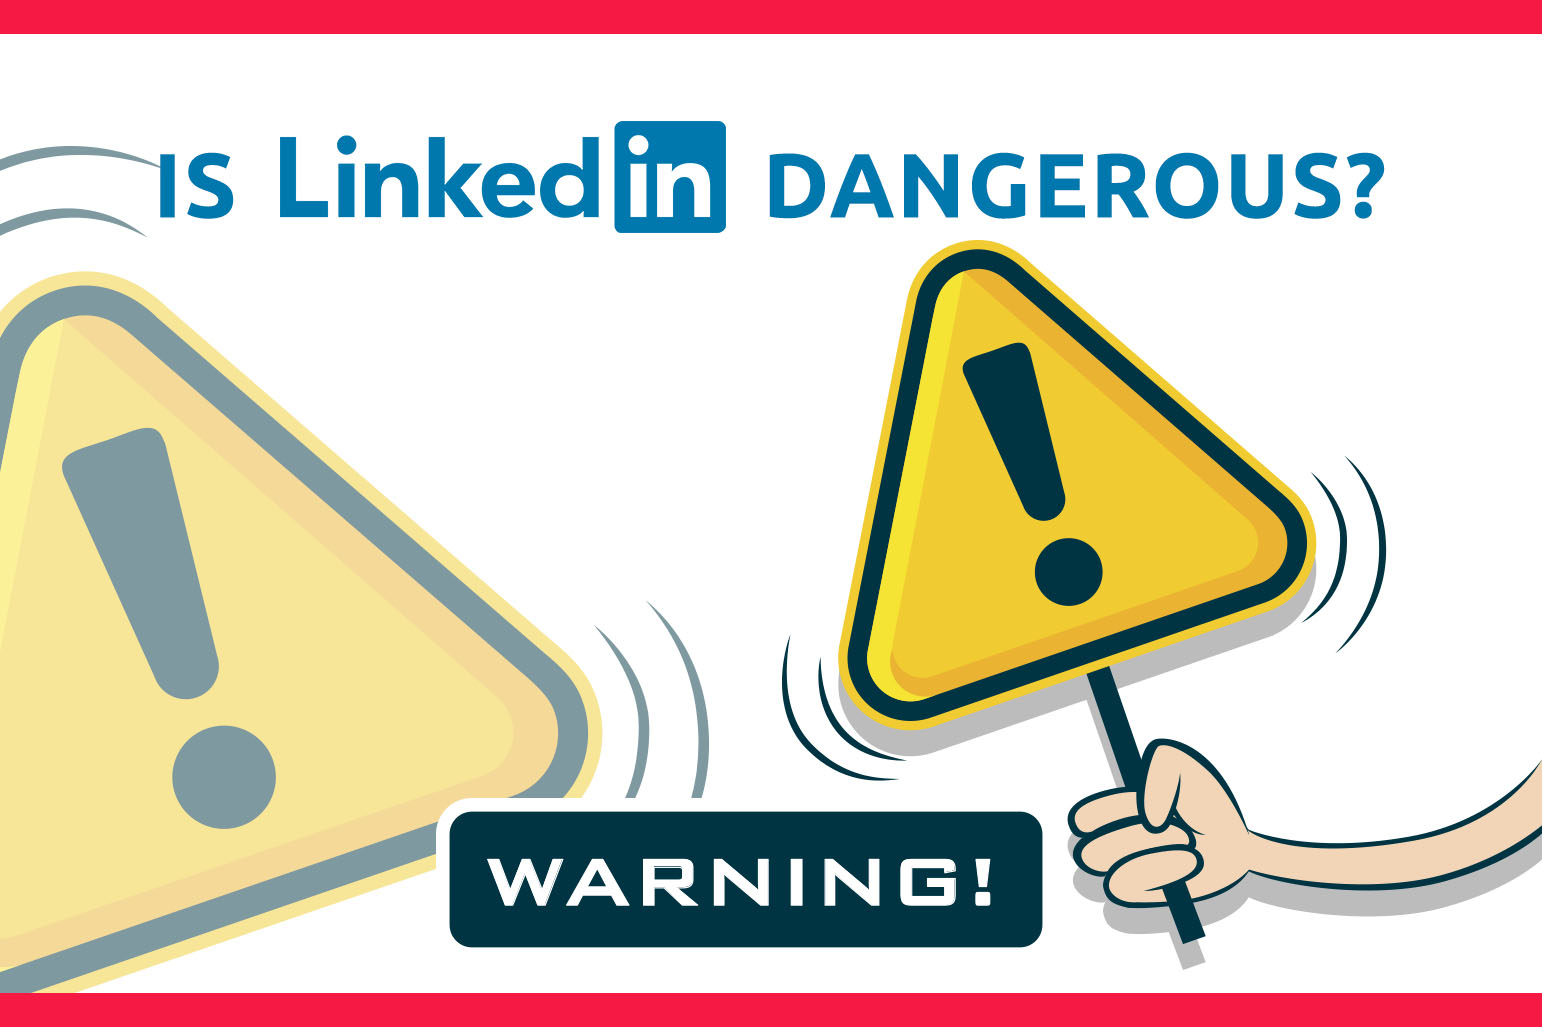 Is LinkedIn Dangerous?